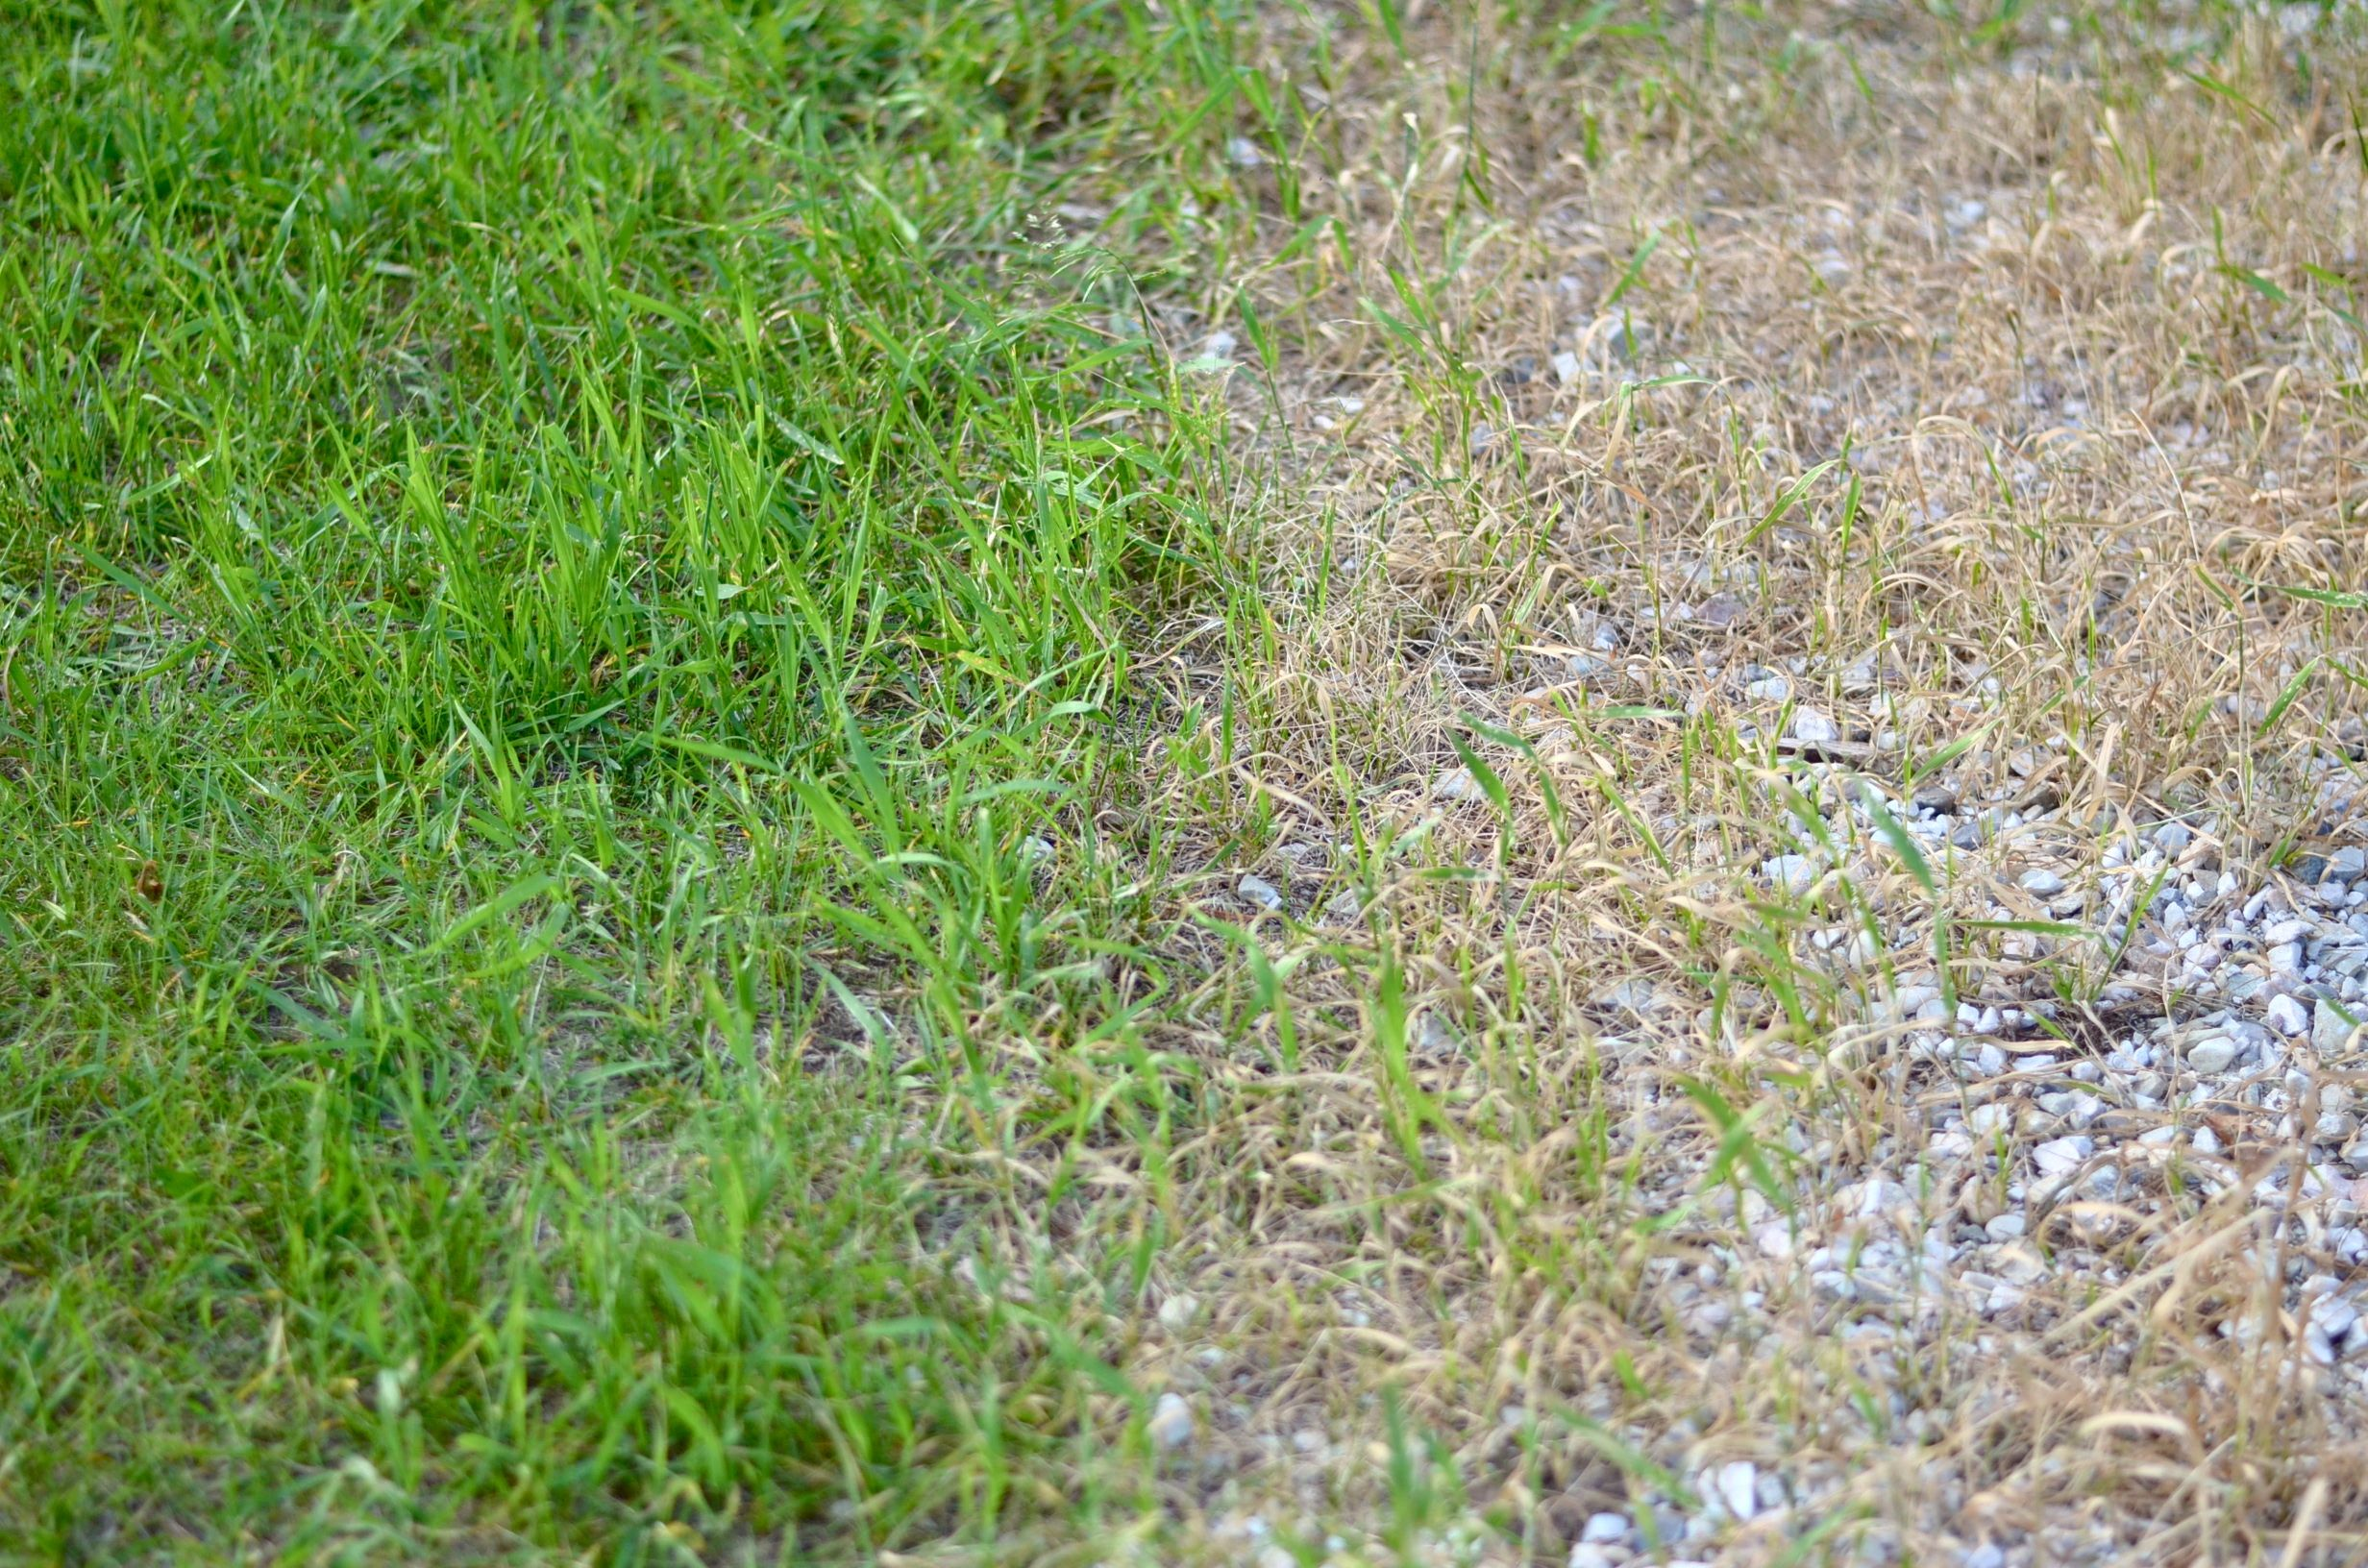 Dsc how to kill weeds grass naturally without chemicals my